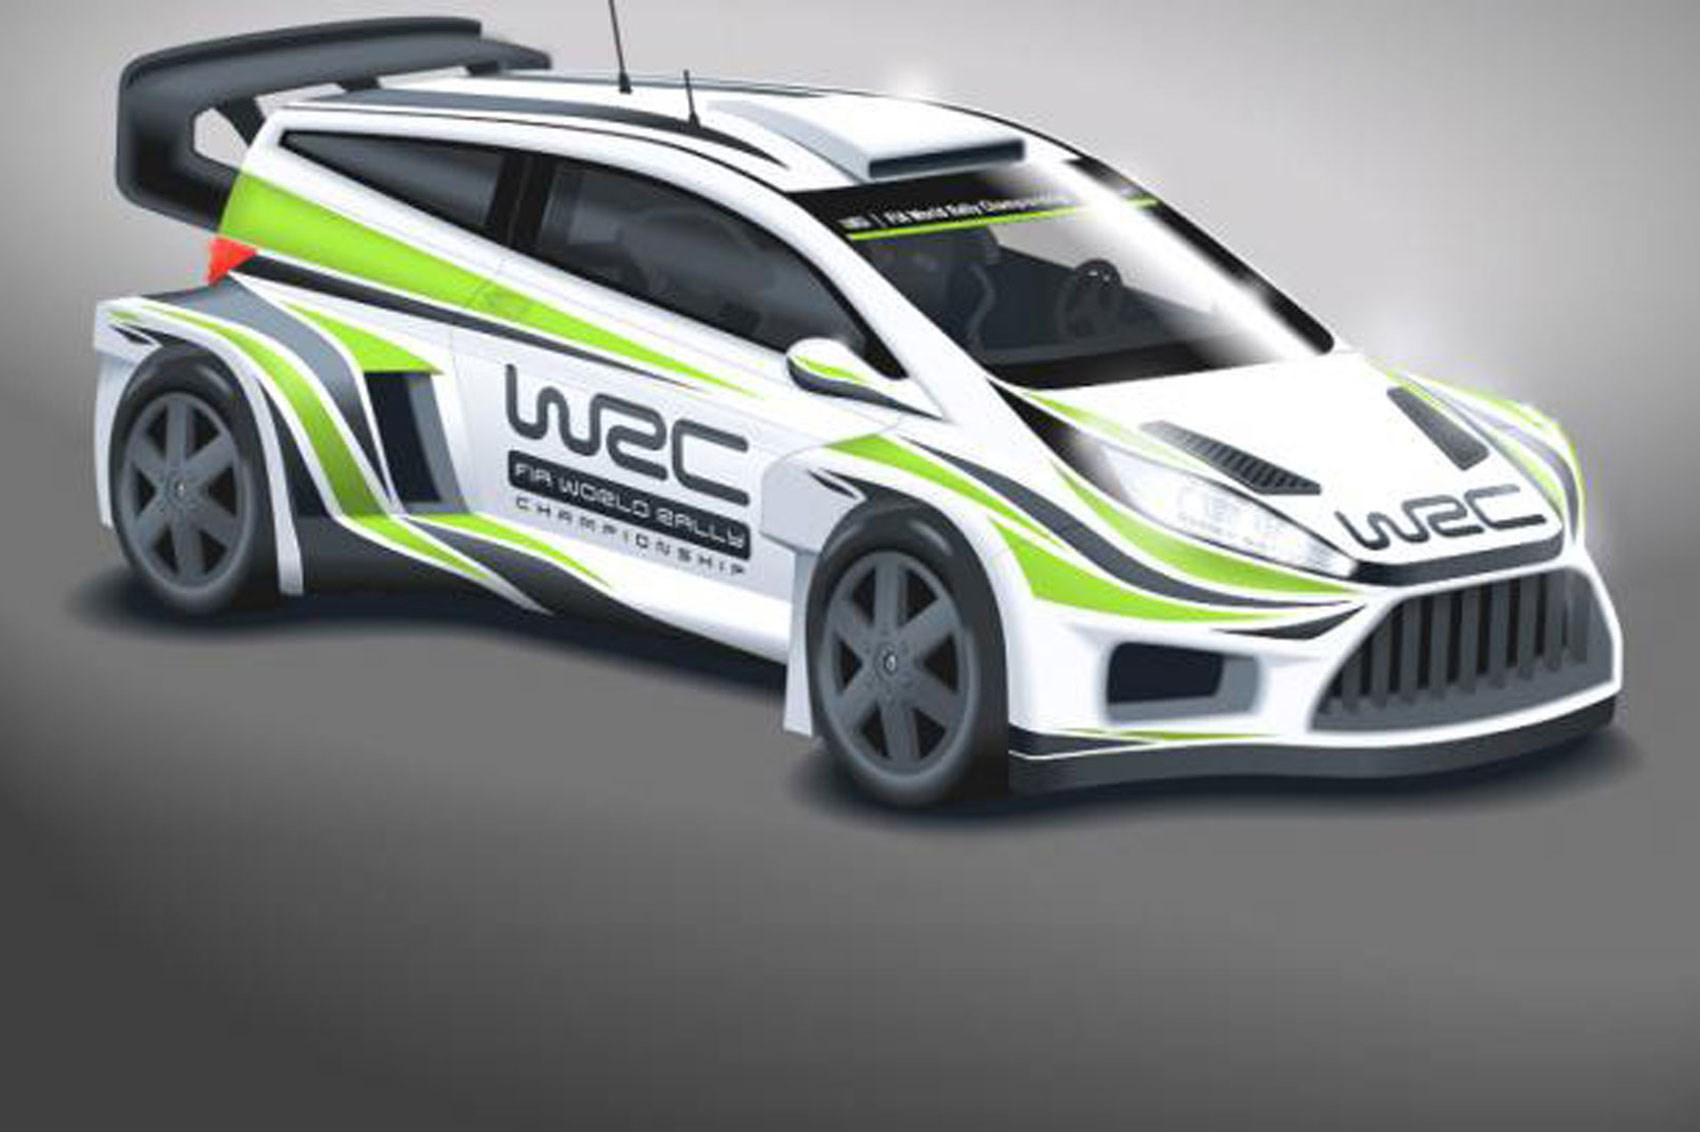 Ultrablogus  Winsome Wild New Look For Wrc Cars In  By Car Magazine With Entrancing Wrc Cars Will Get Wider Bodies Bigger Wings And More Power For  With Breathtaking Mercedes Cl Interior Also Volkswagen Golf  Interior In Addition Ford Focus Estate Interior And New Ford Fiesta Interior As Well As Seat Ibiza  Interior Additionally Mercedes S Class Interior  From Carmagazinecouk With Ultrablogus  Entrancing Wild New Look For Wrc Cars In  By Car Magazine With Breathtaking Wrc Cars Will Get Wider Bodies Bigger Wings And More Power For  And Winsome Mercedes Cl Interior Also Volkswagen Golf  Interior In Addition Ford Focus Estate Interior From Carmagazinecouk